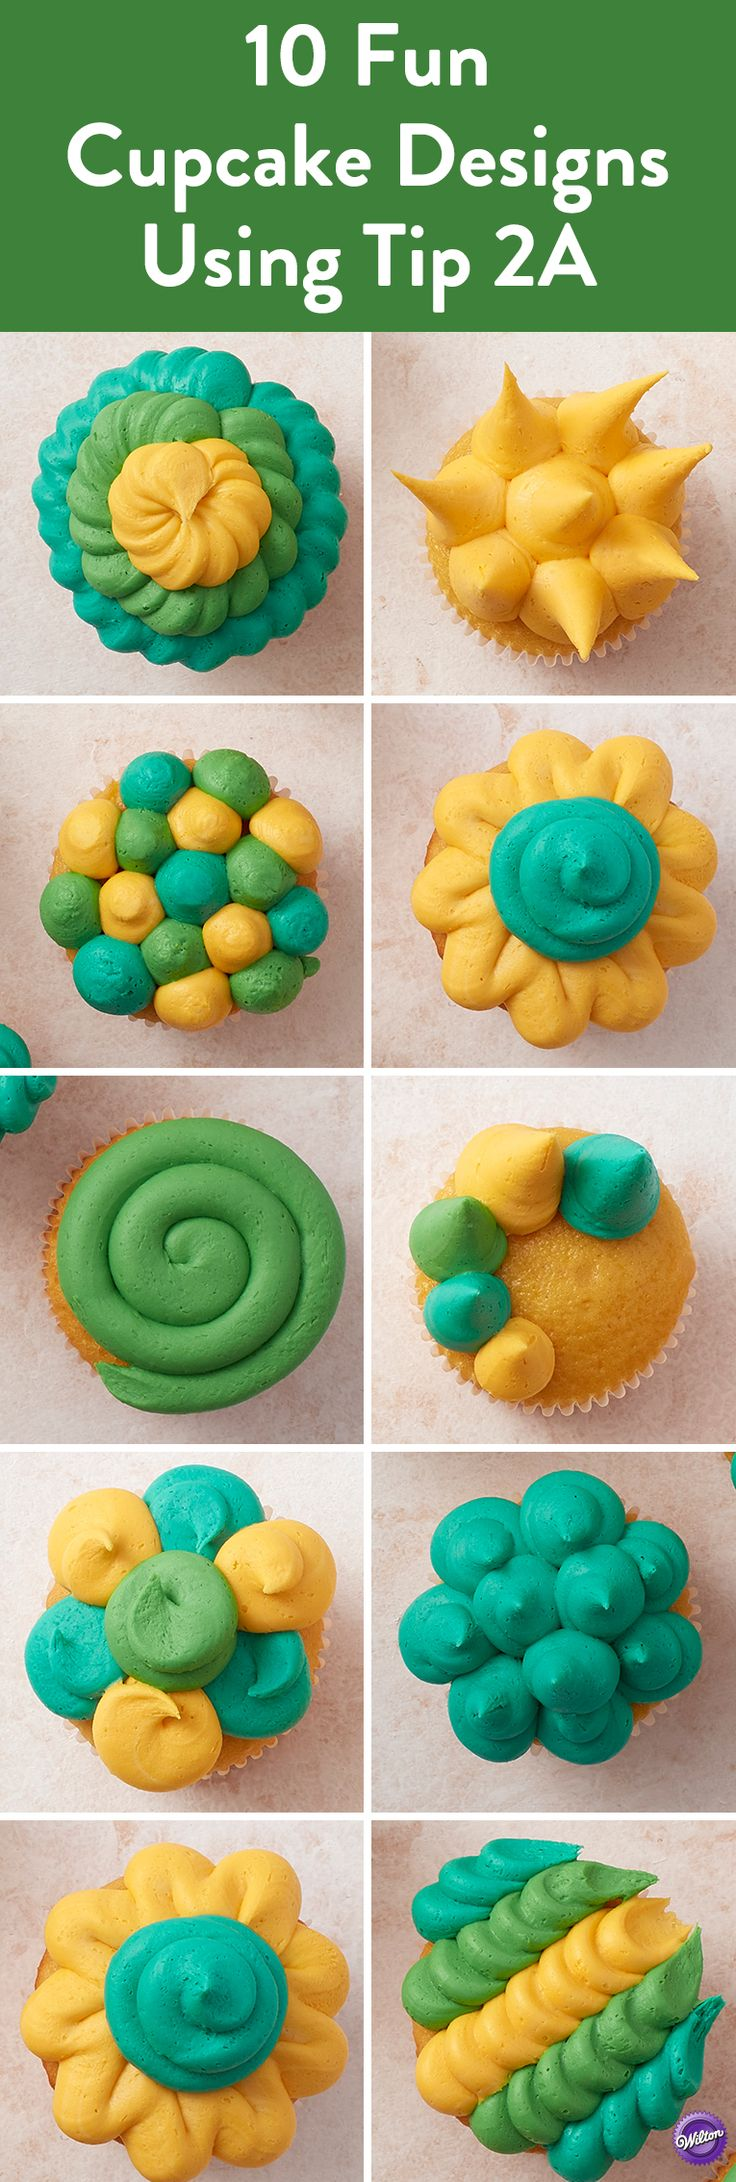 10 Fun Cupcake Designs with Tip 2A - Create fun buttercream cupcake designs using just one tip! From swirls to spirals, flowers to spikes, the WIlton decorating tip 2A can bring your cupcakes to life. Mix and match colors and styles for a striking collection of cupcakes that's sure to impress!